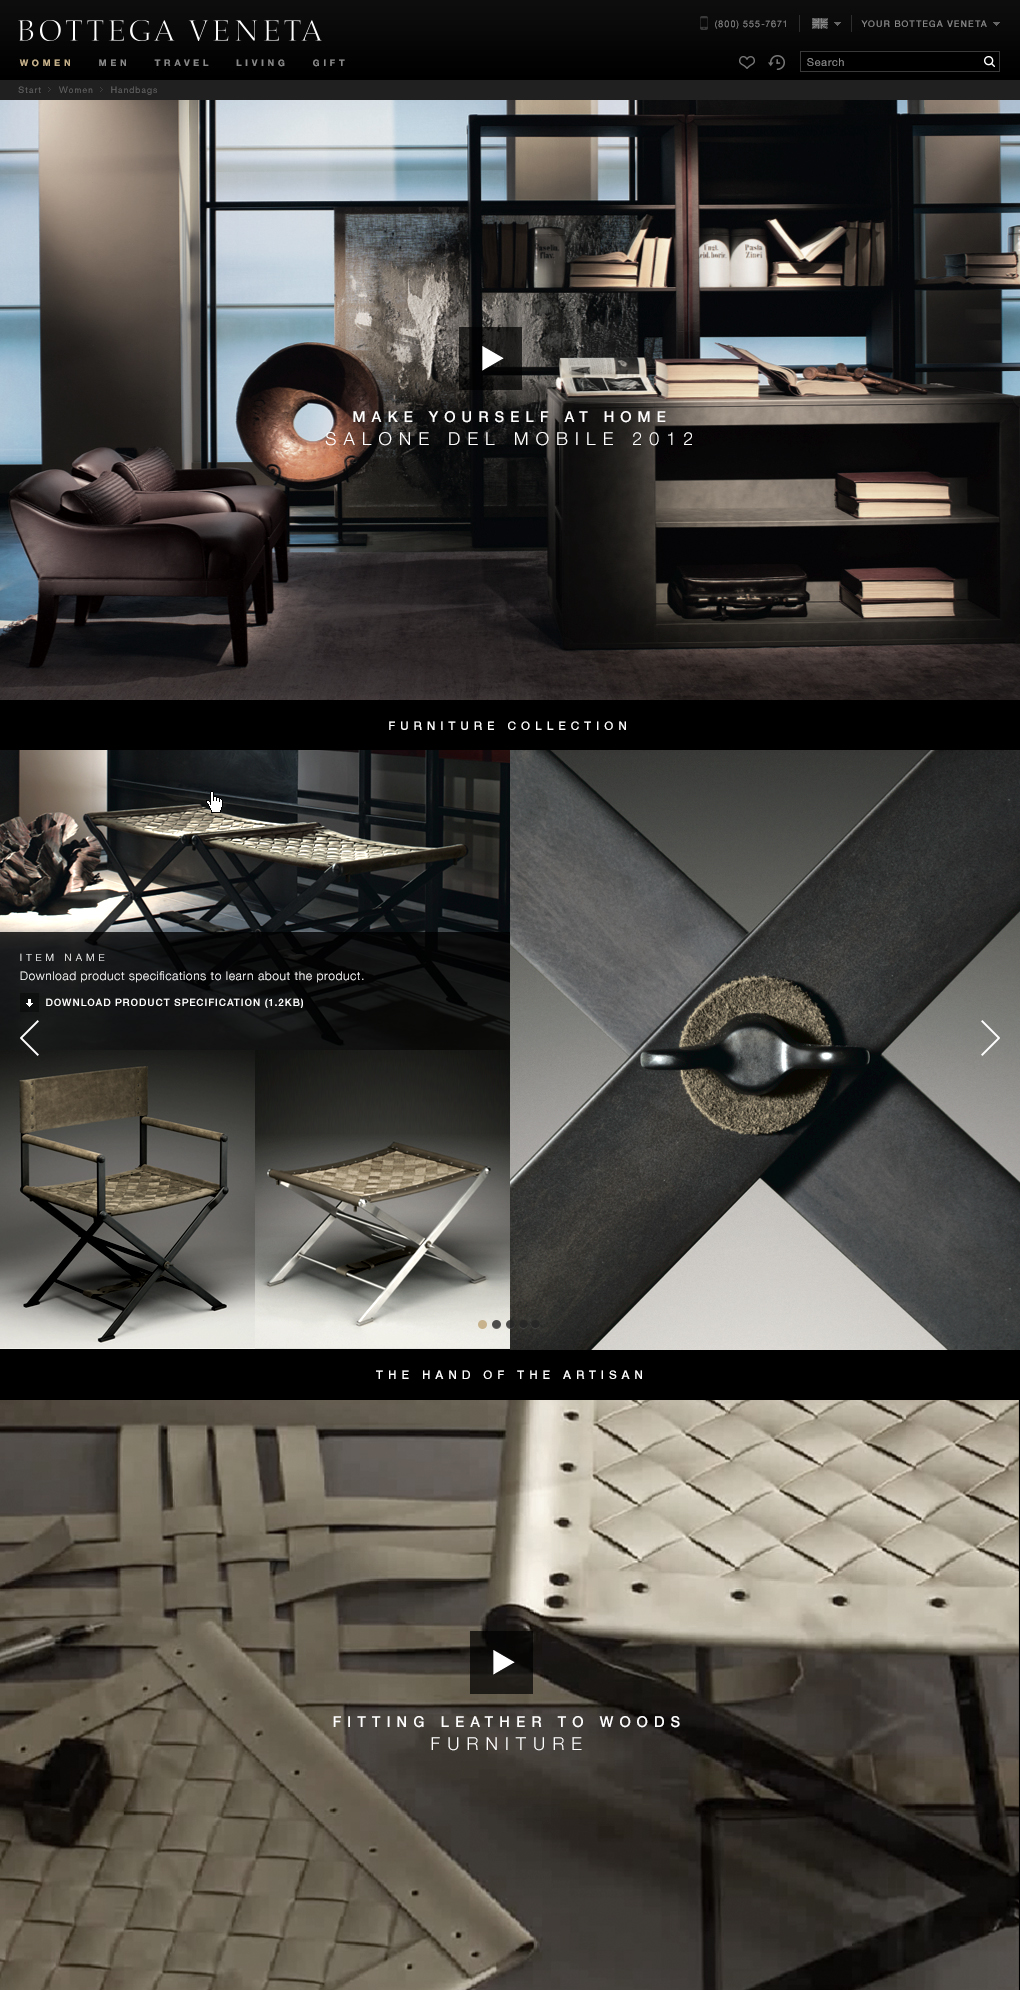 Furniture_Collection#2.jpg